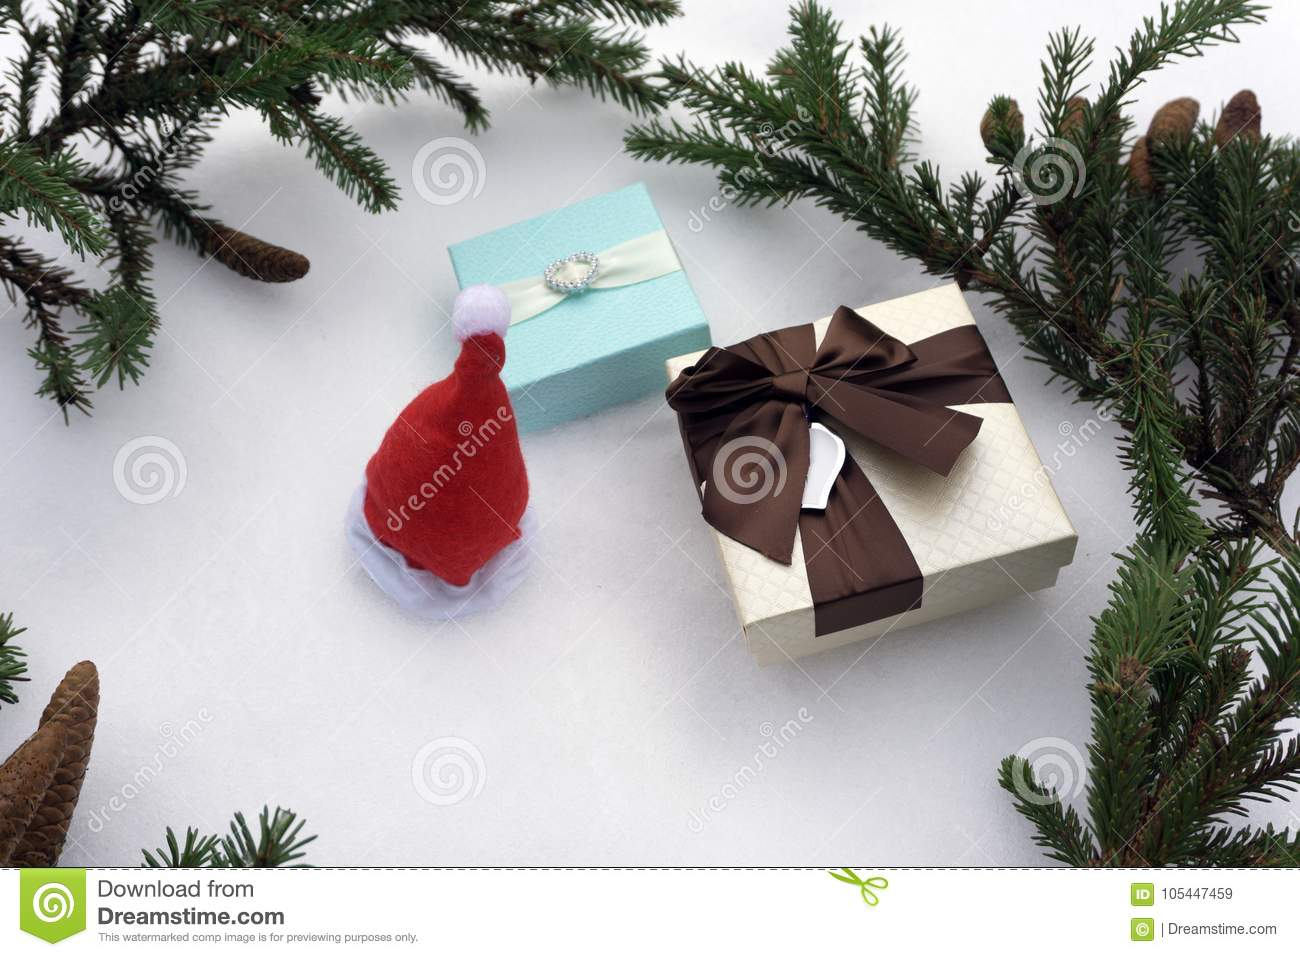 Three Gift Boxes, Christmas Decorations, Spruce Branches And Pine ...